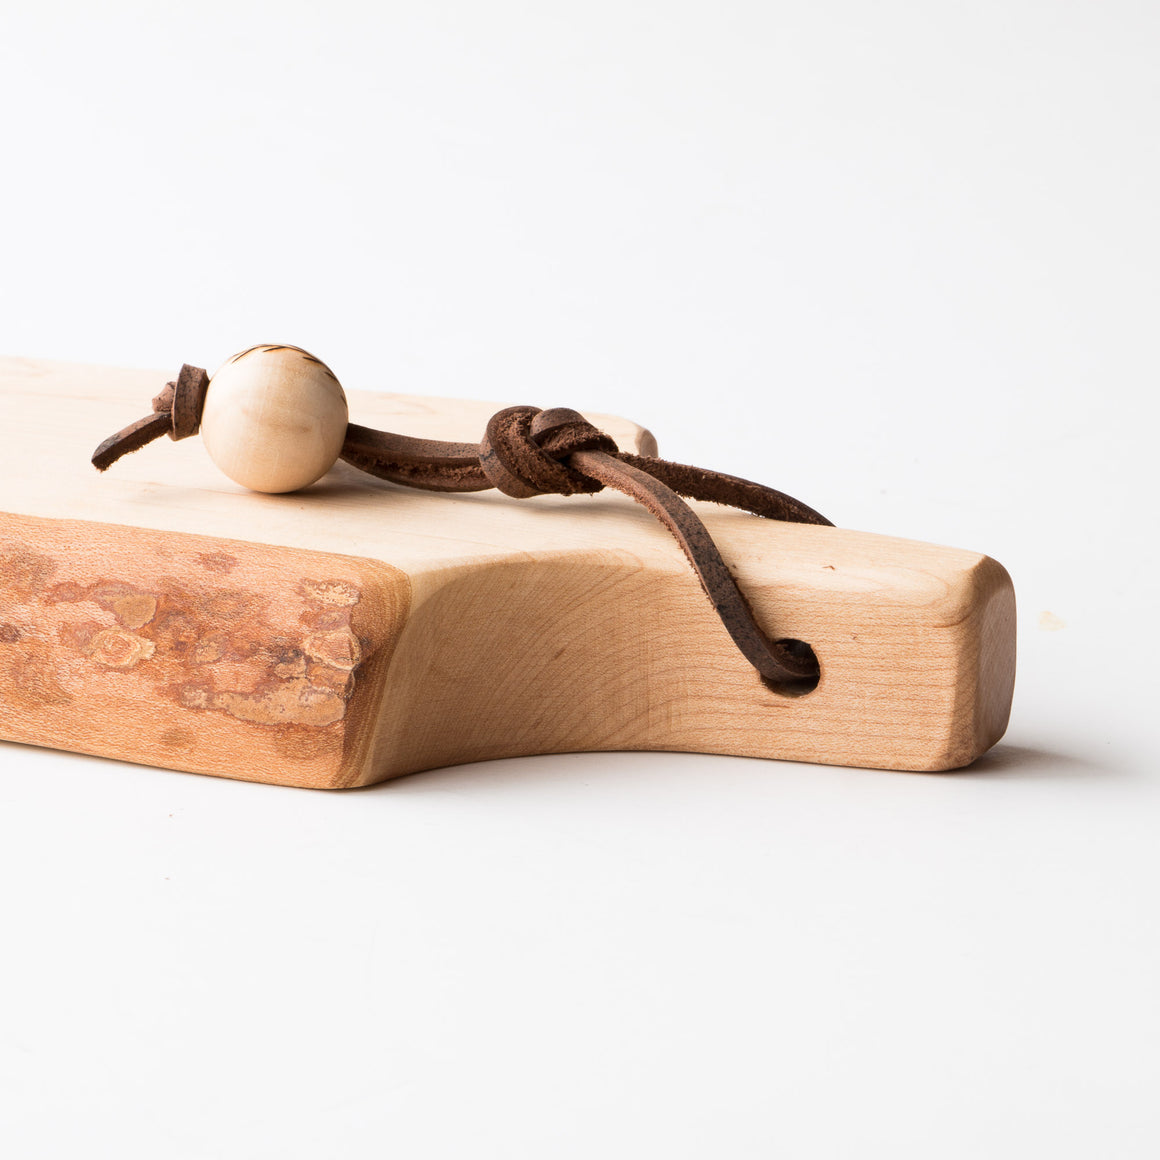 Three Handmade Long Bread Cutting Boards in Recycled Maple - Sold by Chic & Basta